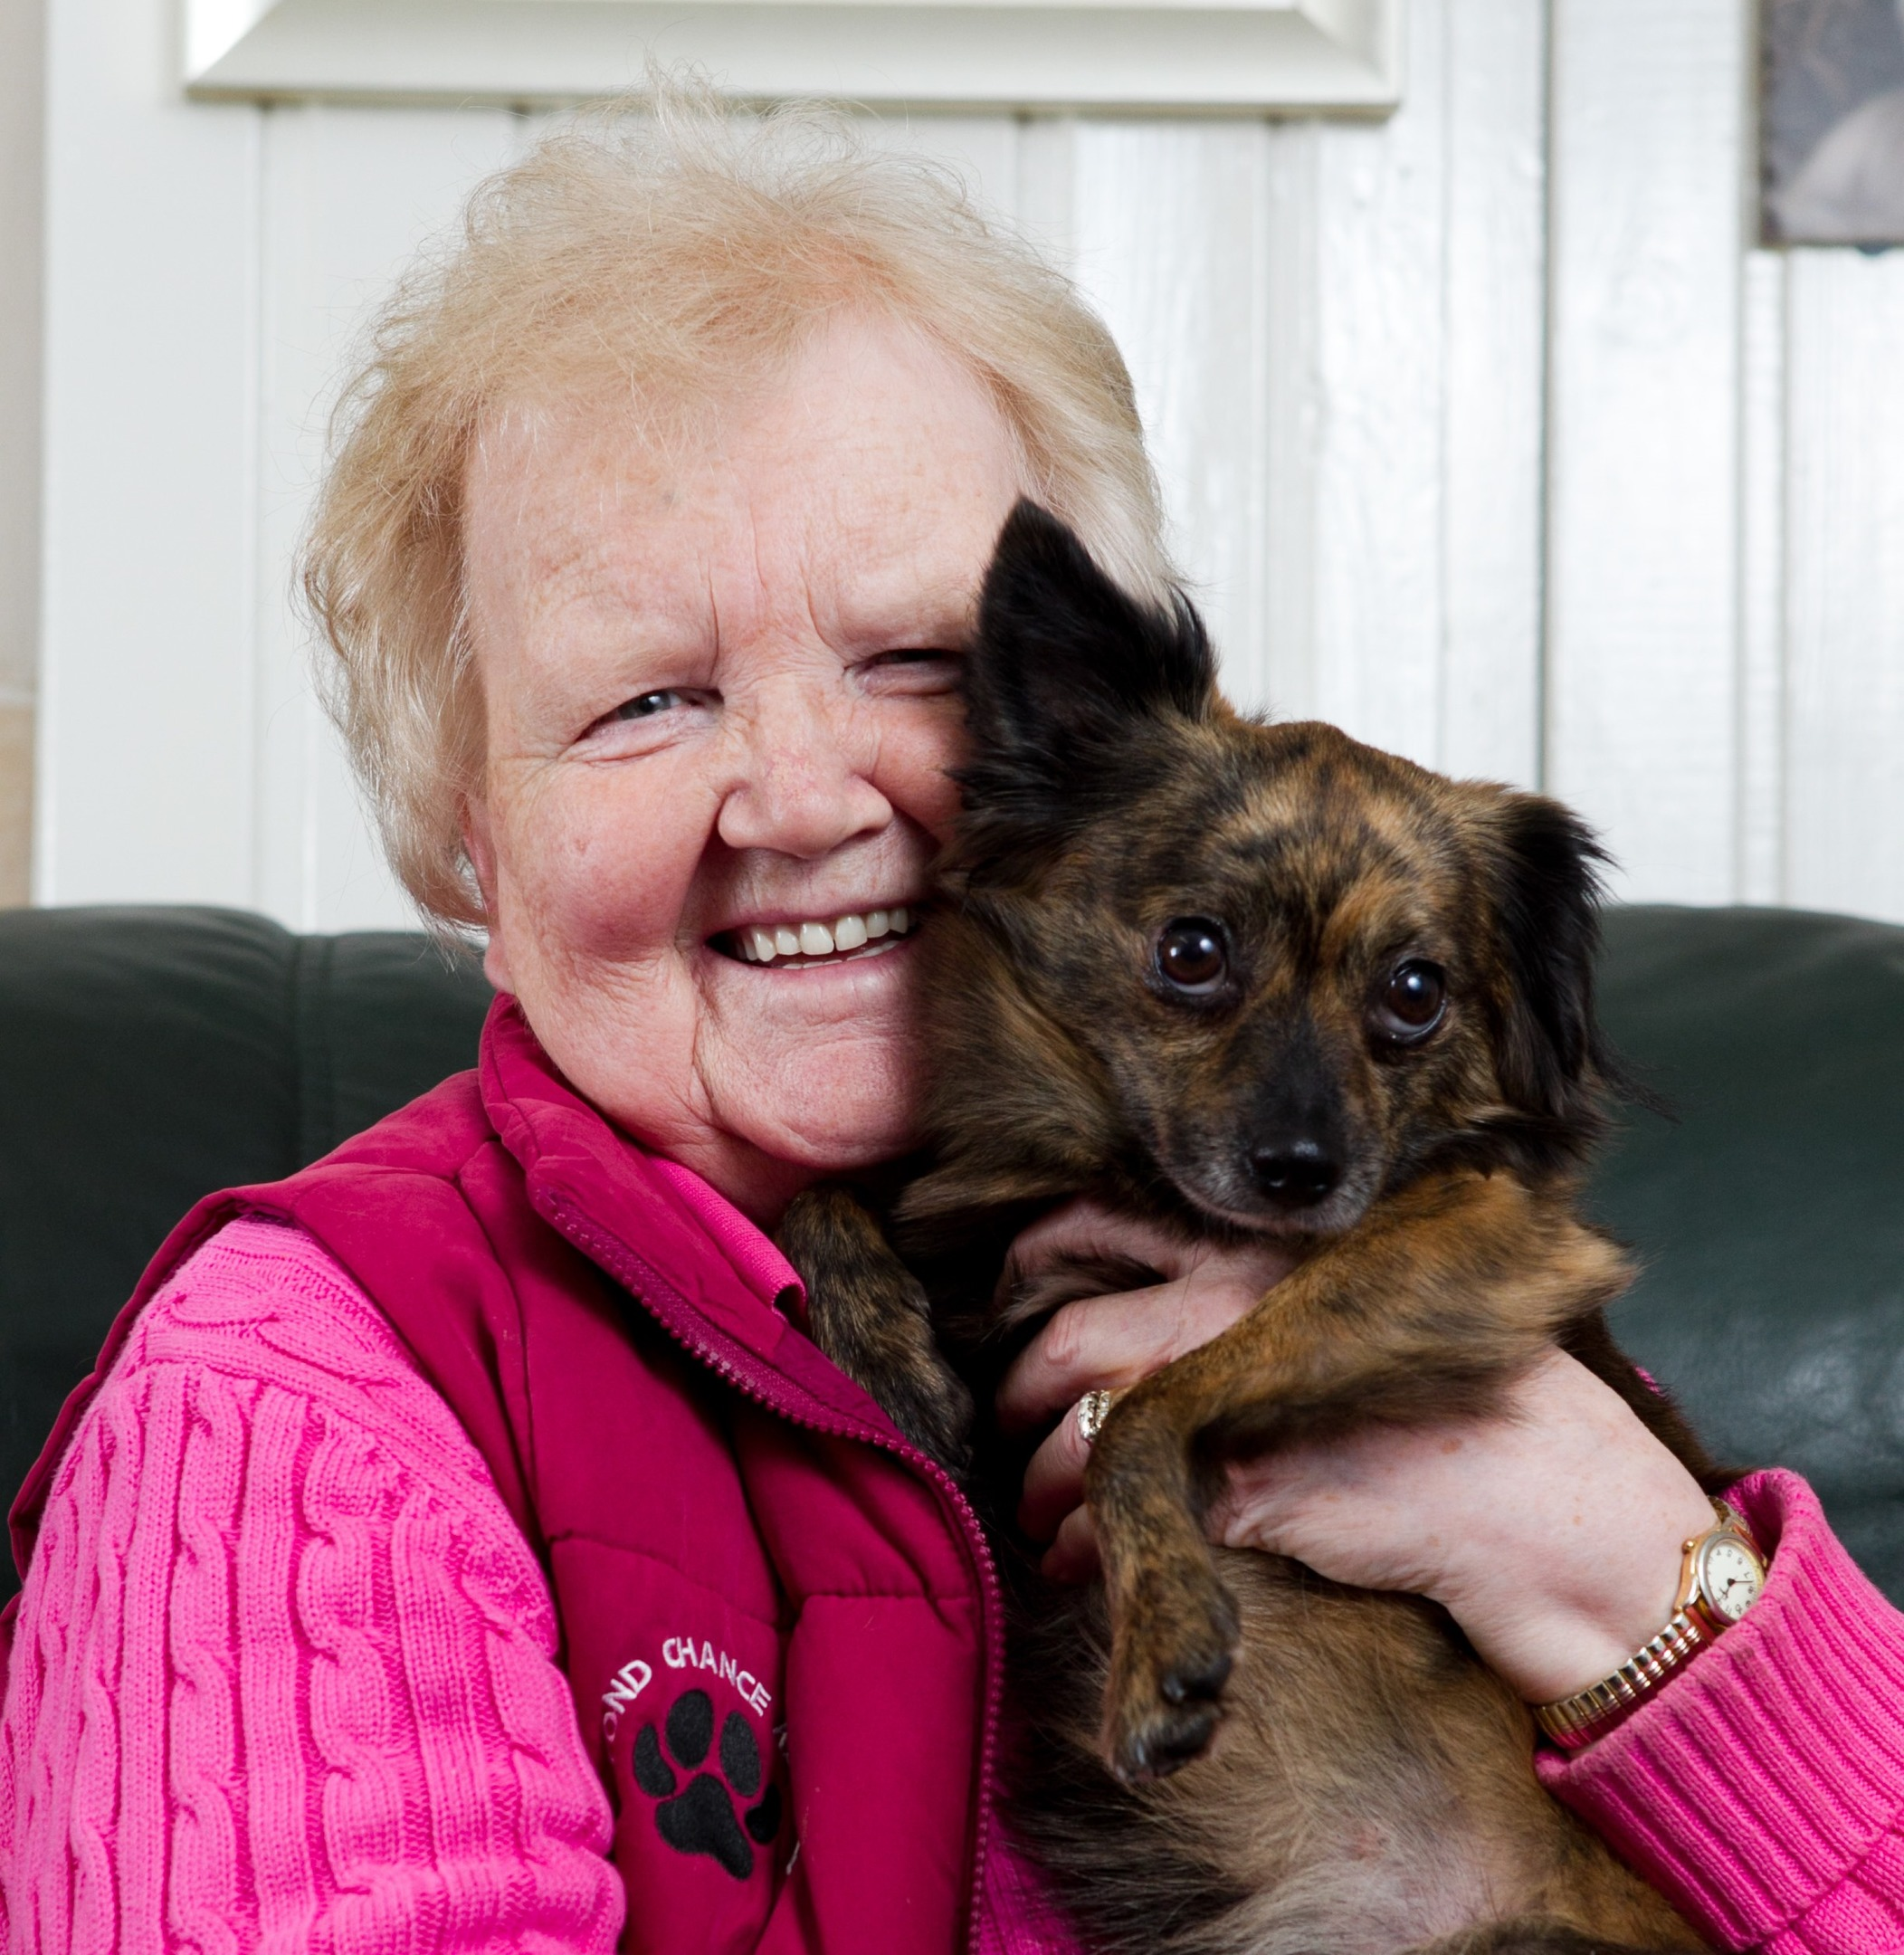 Ena Conyon and her dog, Dana, who was lost for over two weeks (Andrew Cawley / DC Thomson)